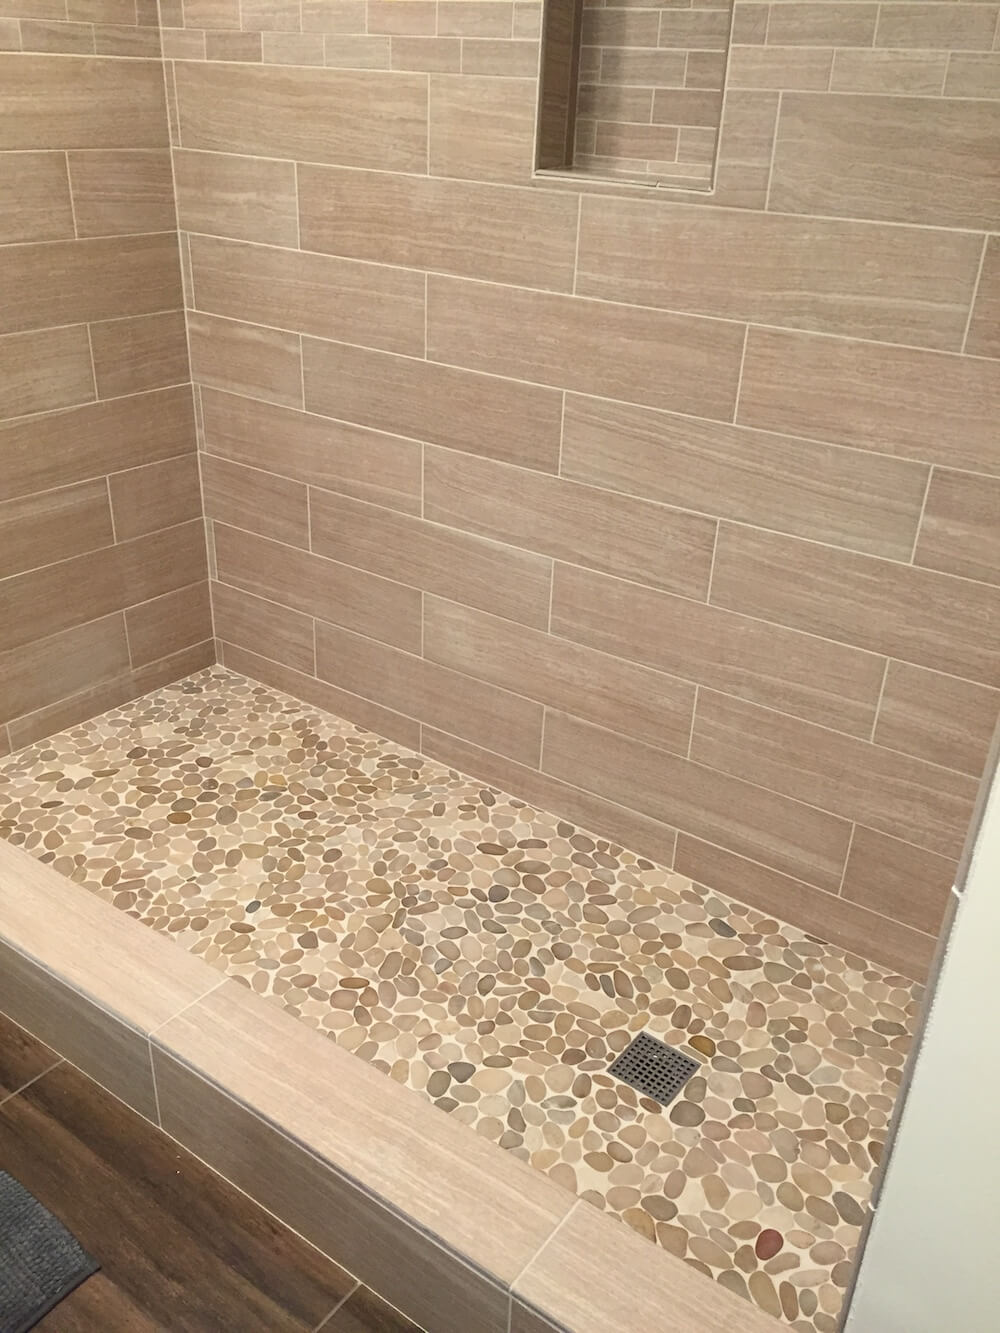 Captivating Showing Tiling Cost Factors